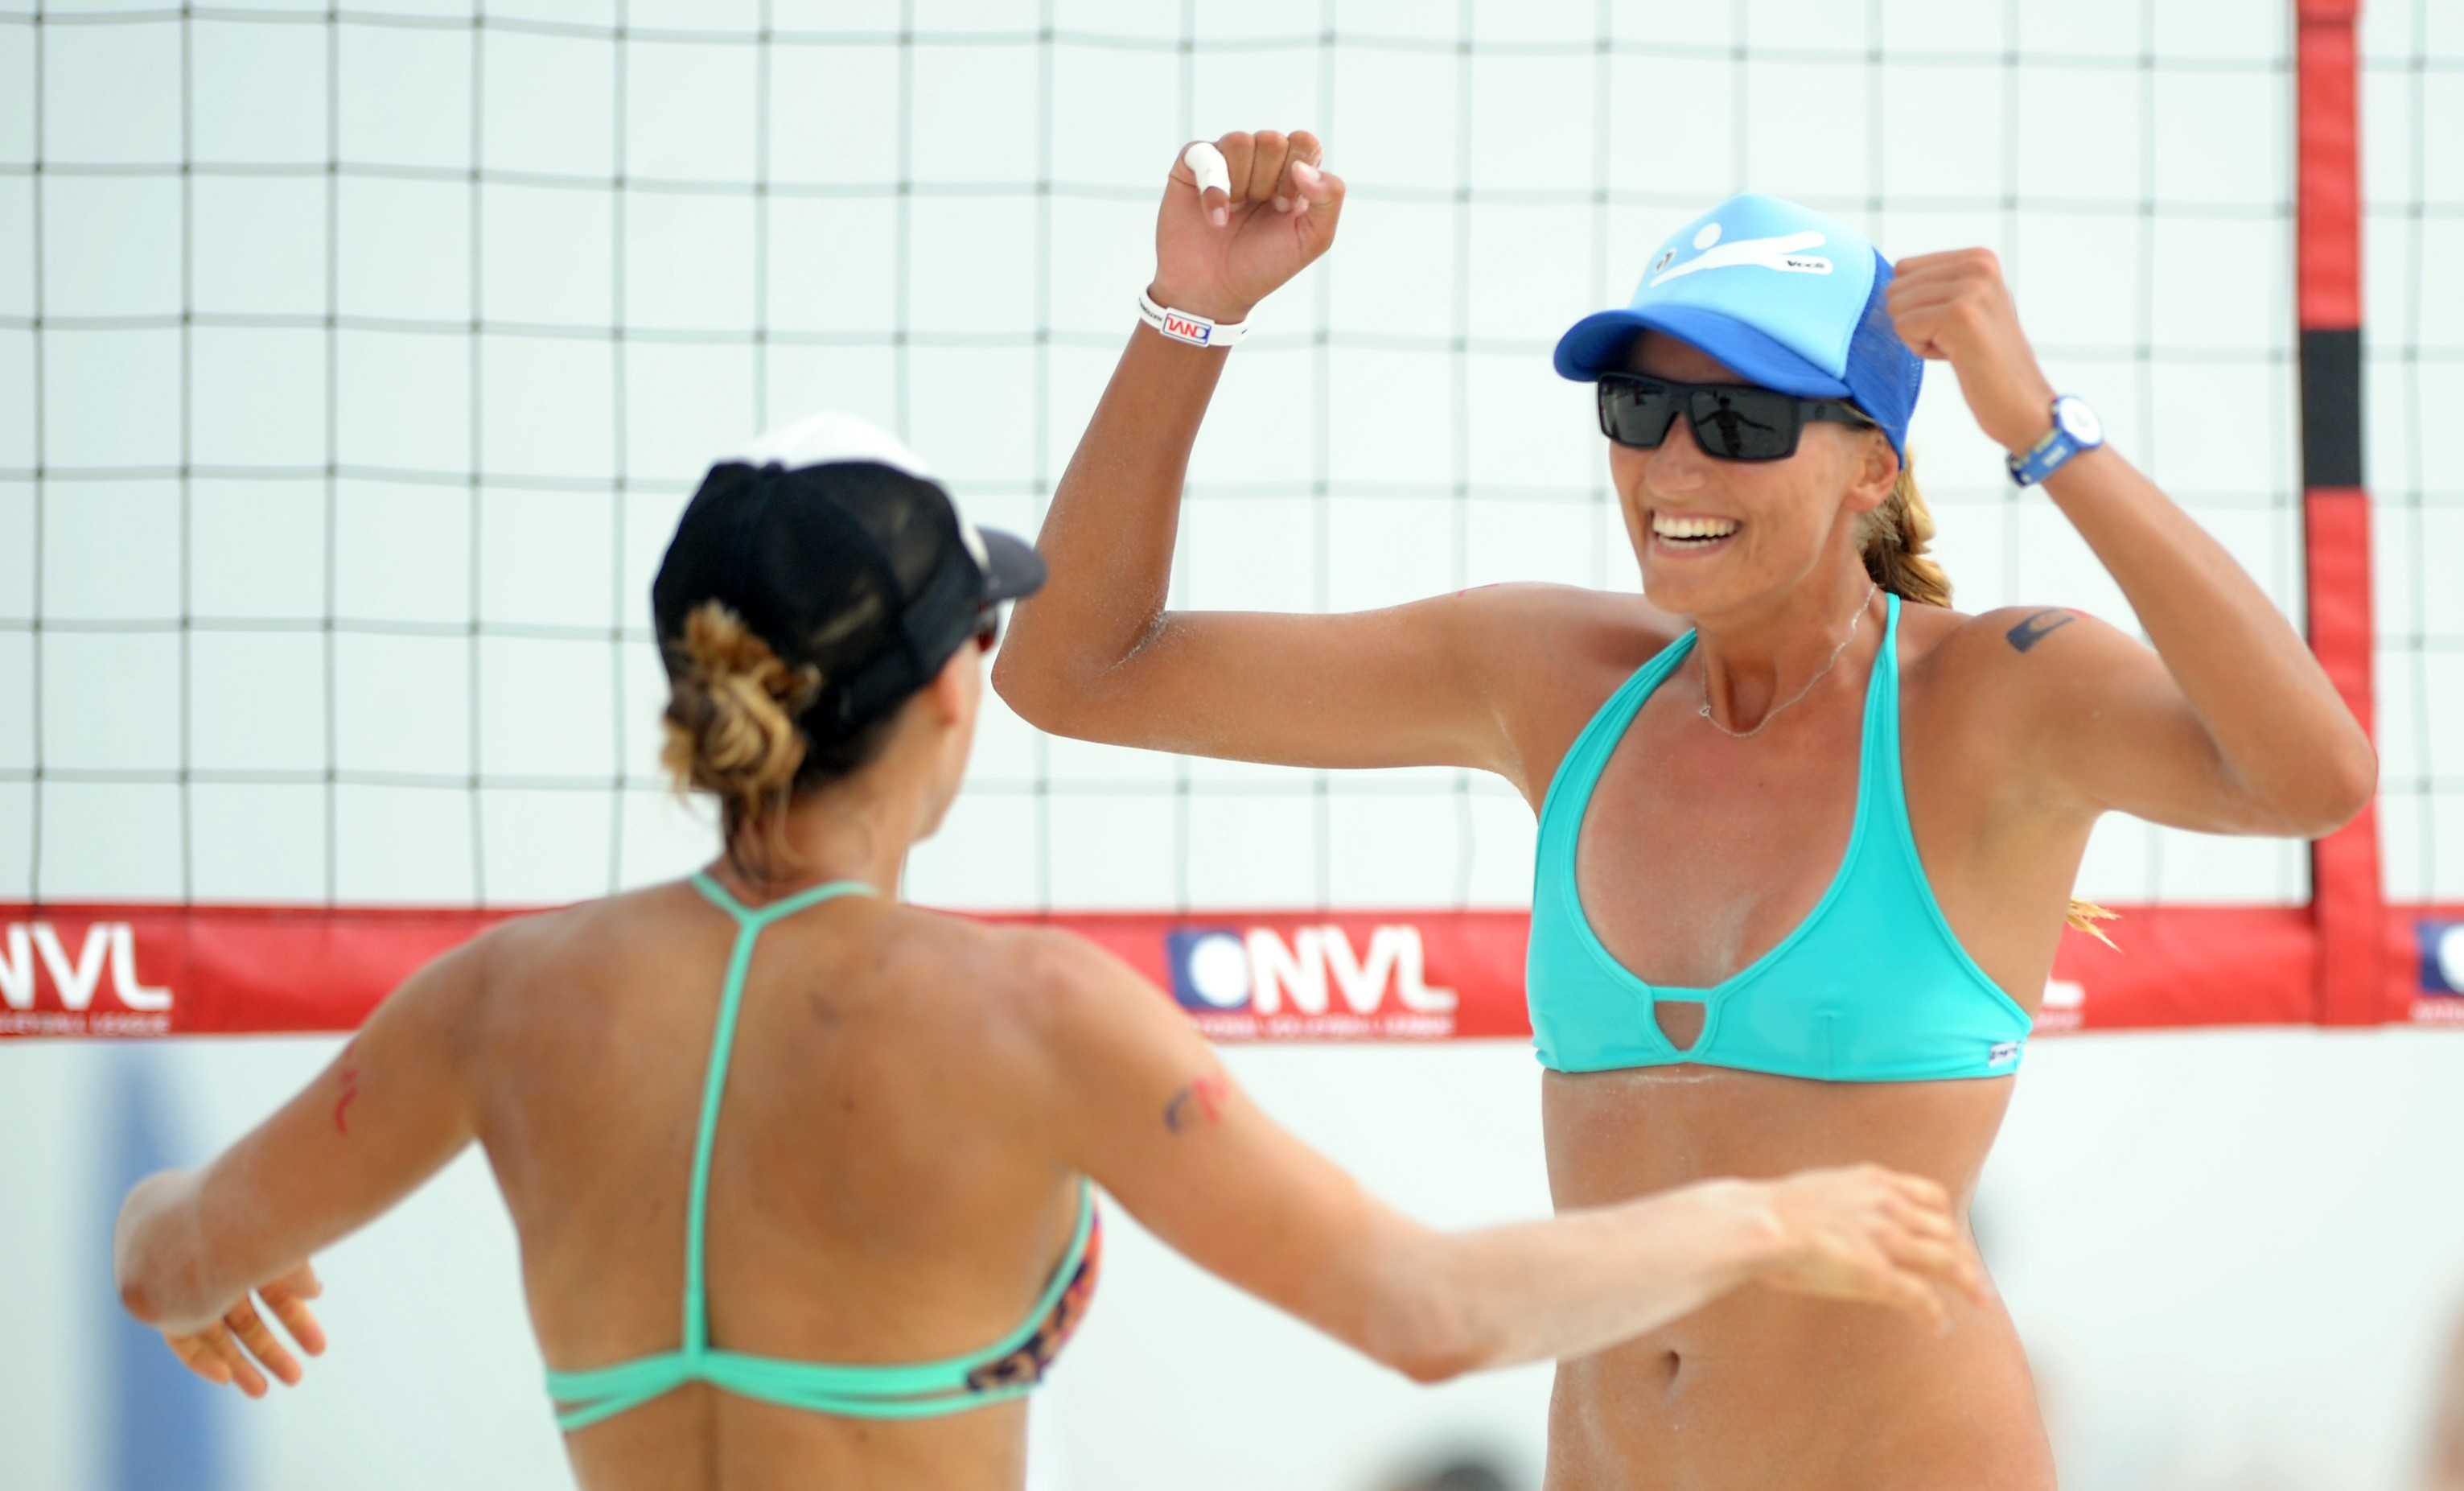 MADEIRA BEACH CHAMPIONSHIPS 2015 – WOMEN'S PREVIEW